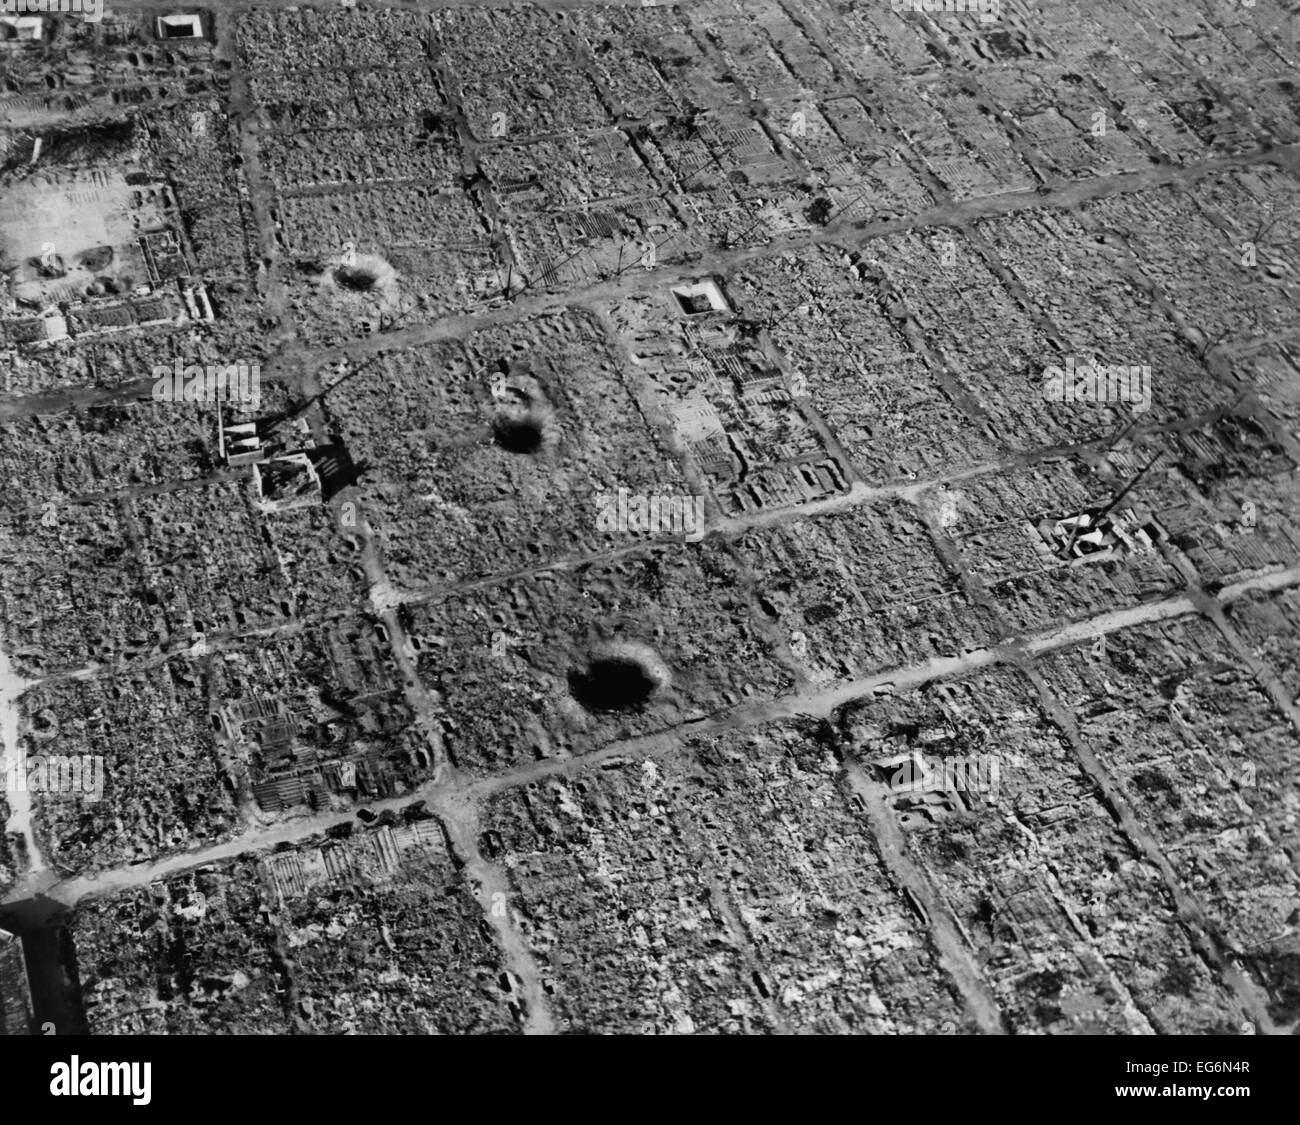 aerial-view-of-osaka-japan-after-firebombing-by-us-incendiary-bombs-EG6N4R.jpg